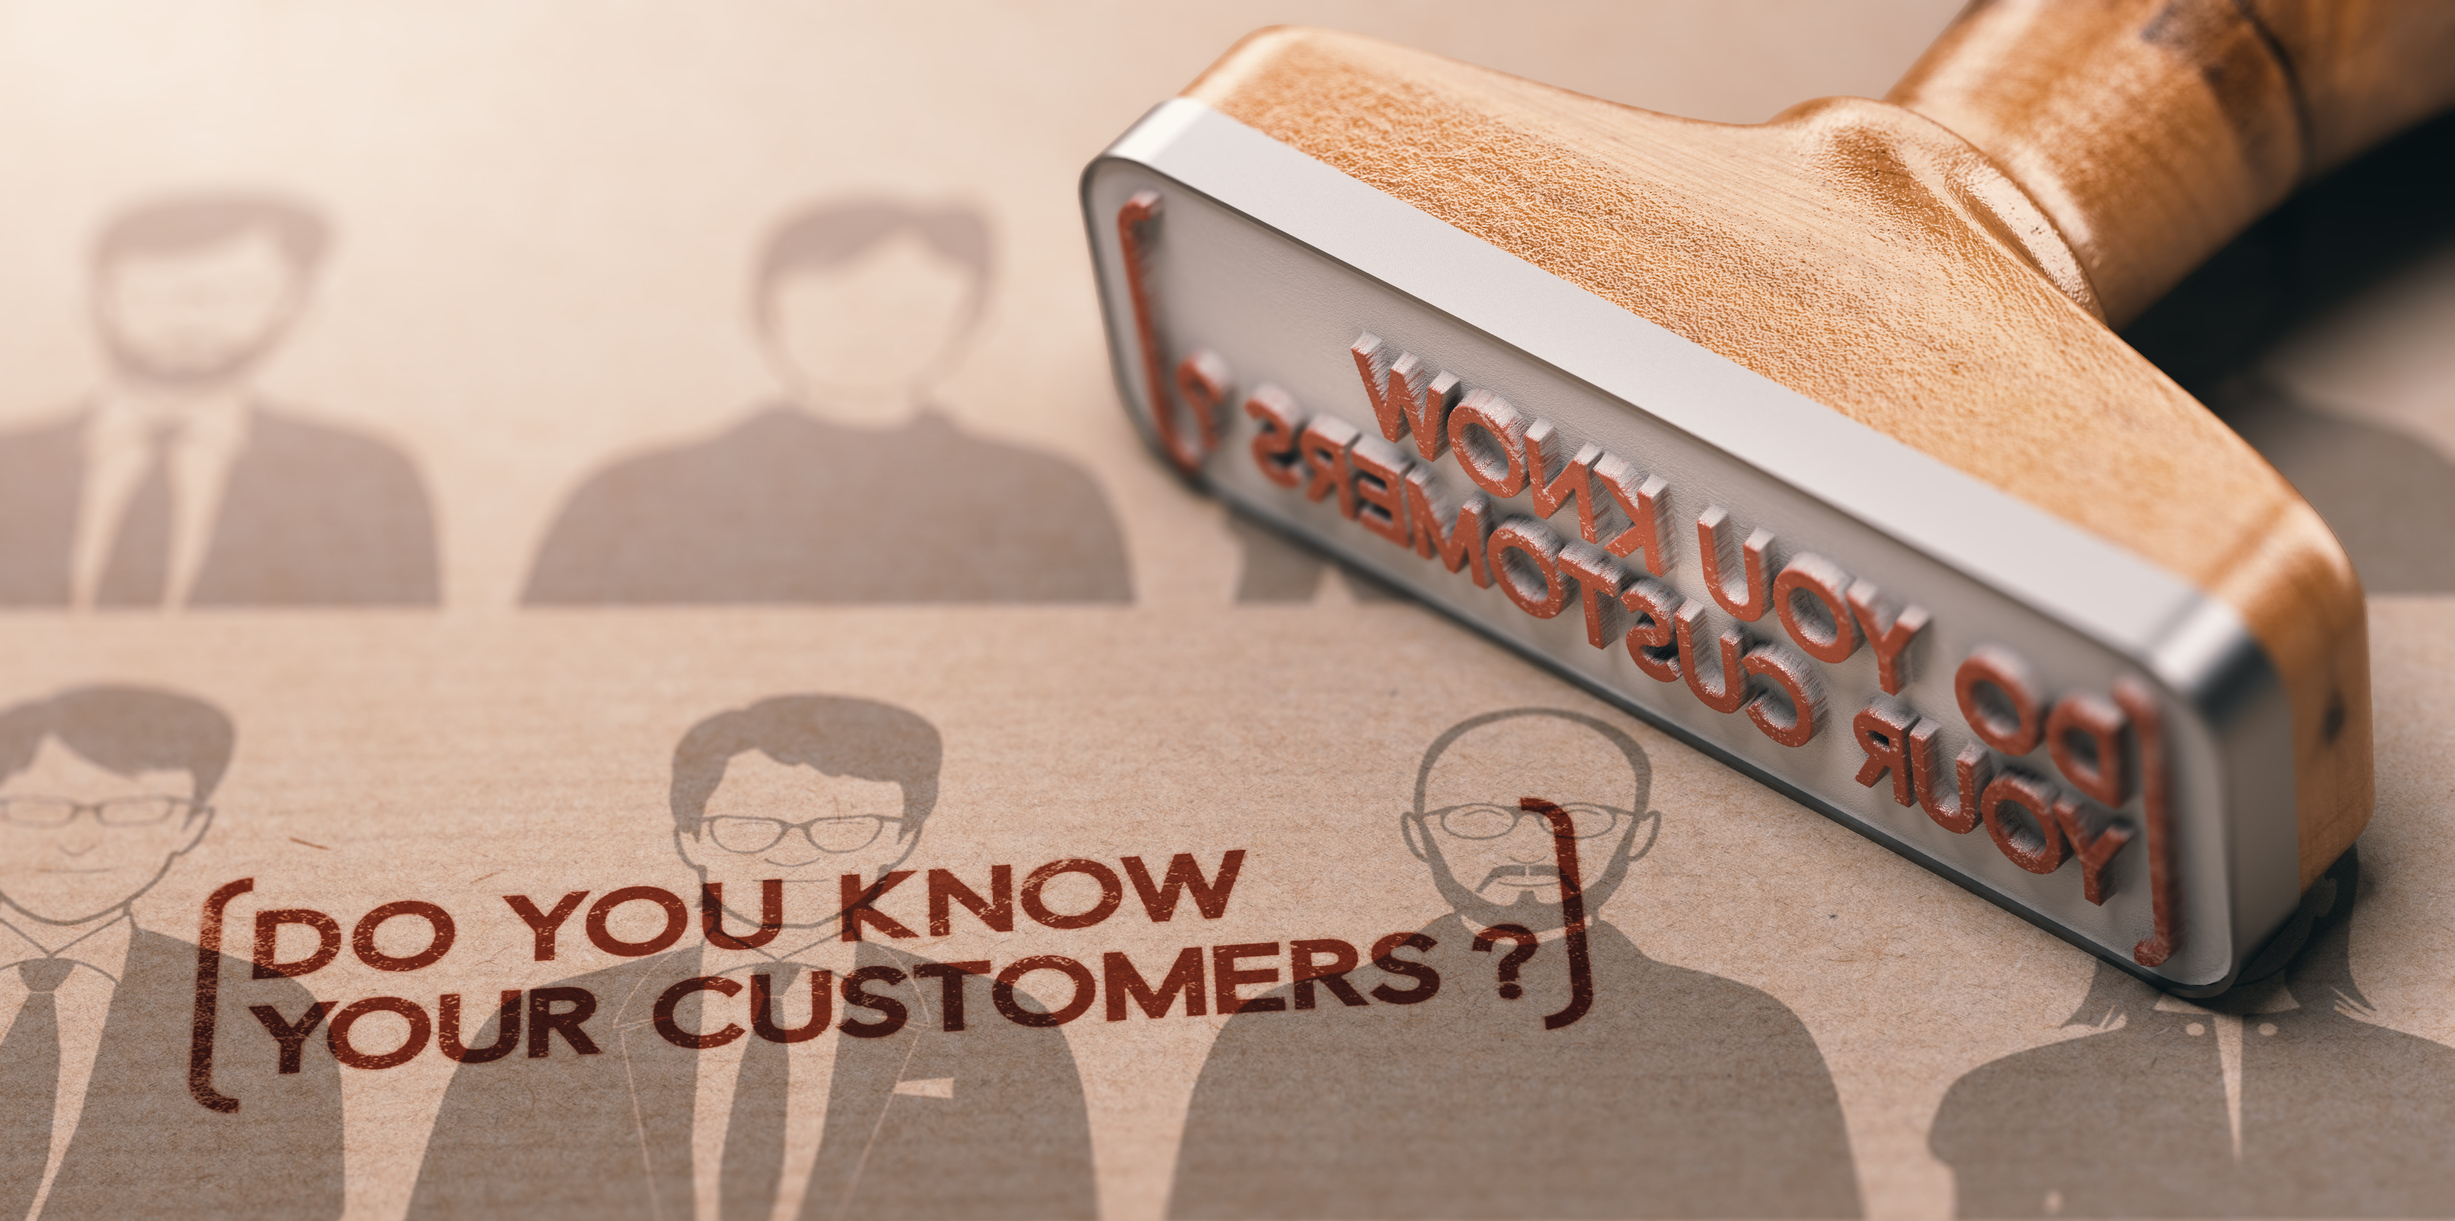 Helping Sellers Develop Trust with Customers